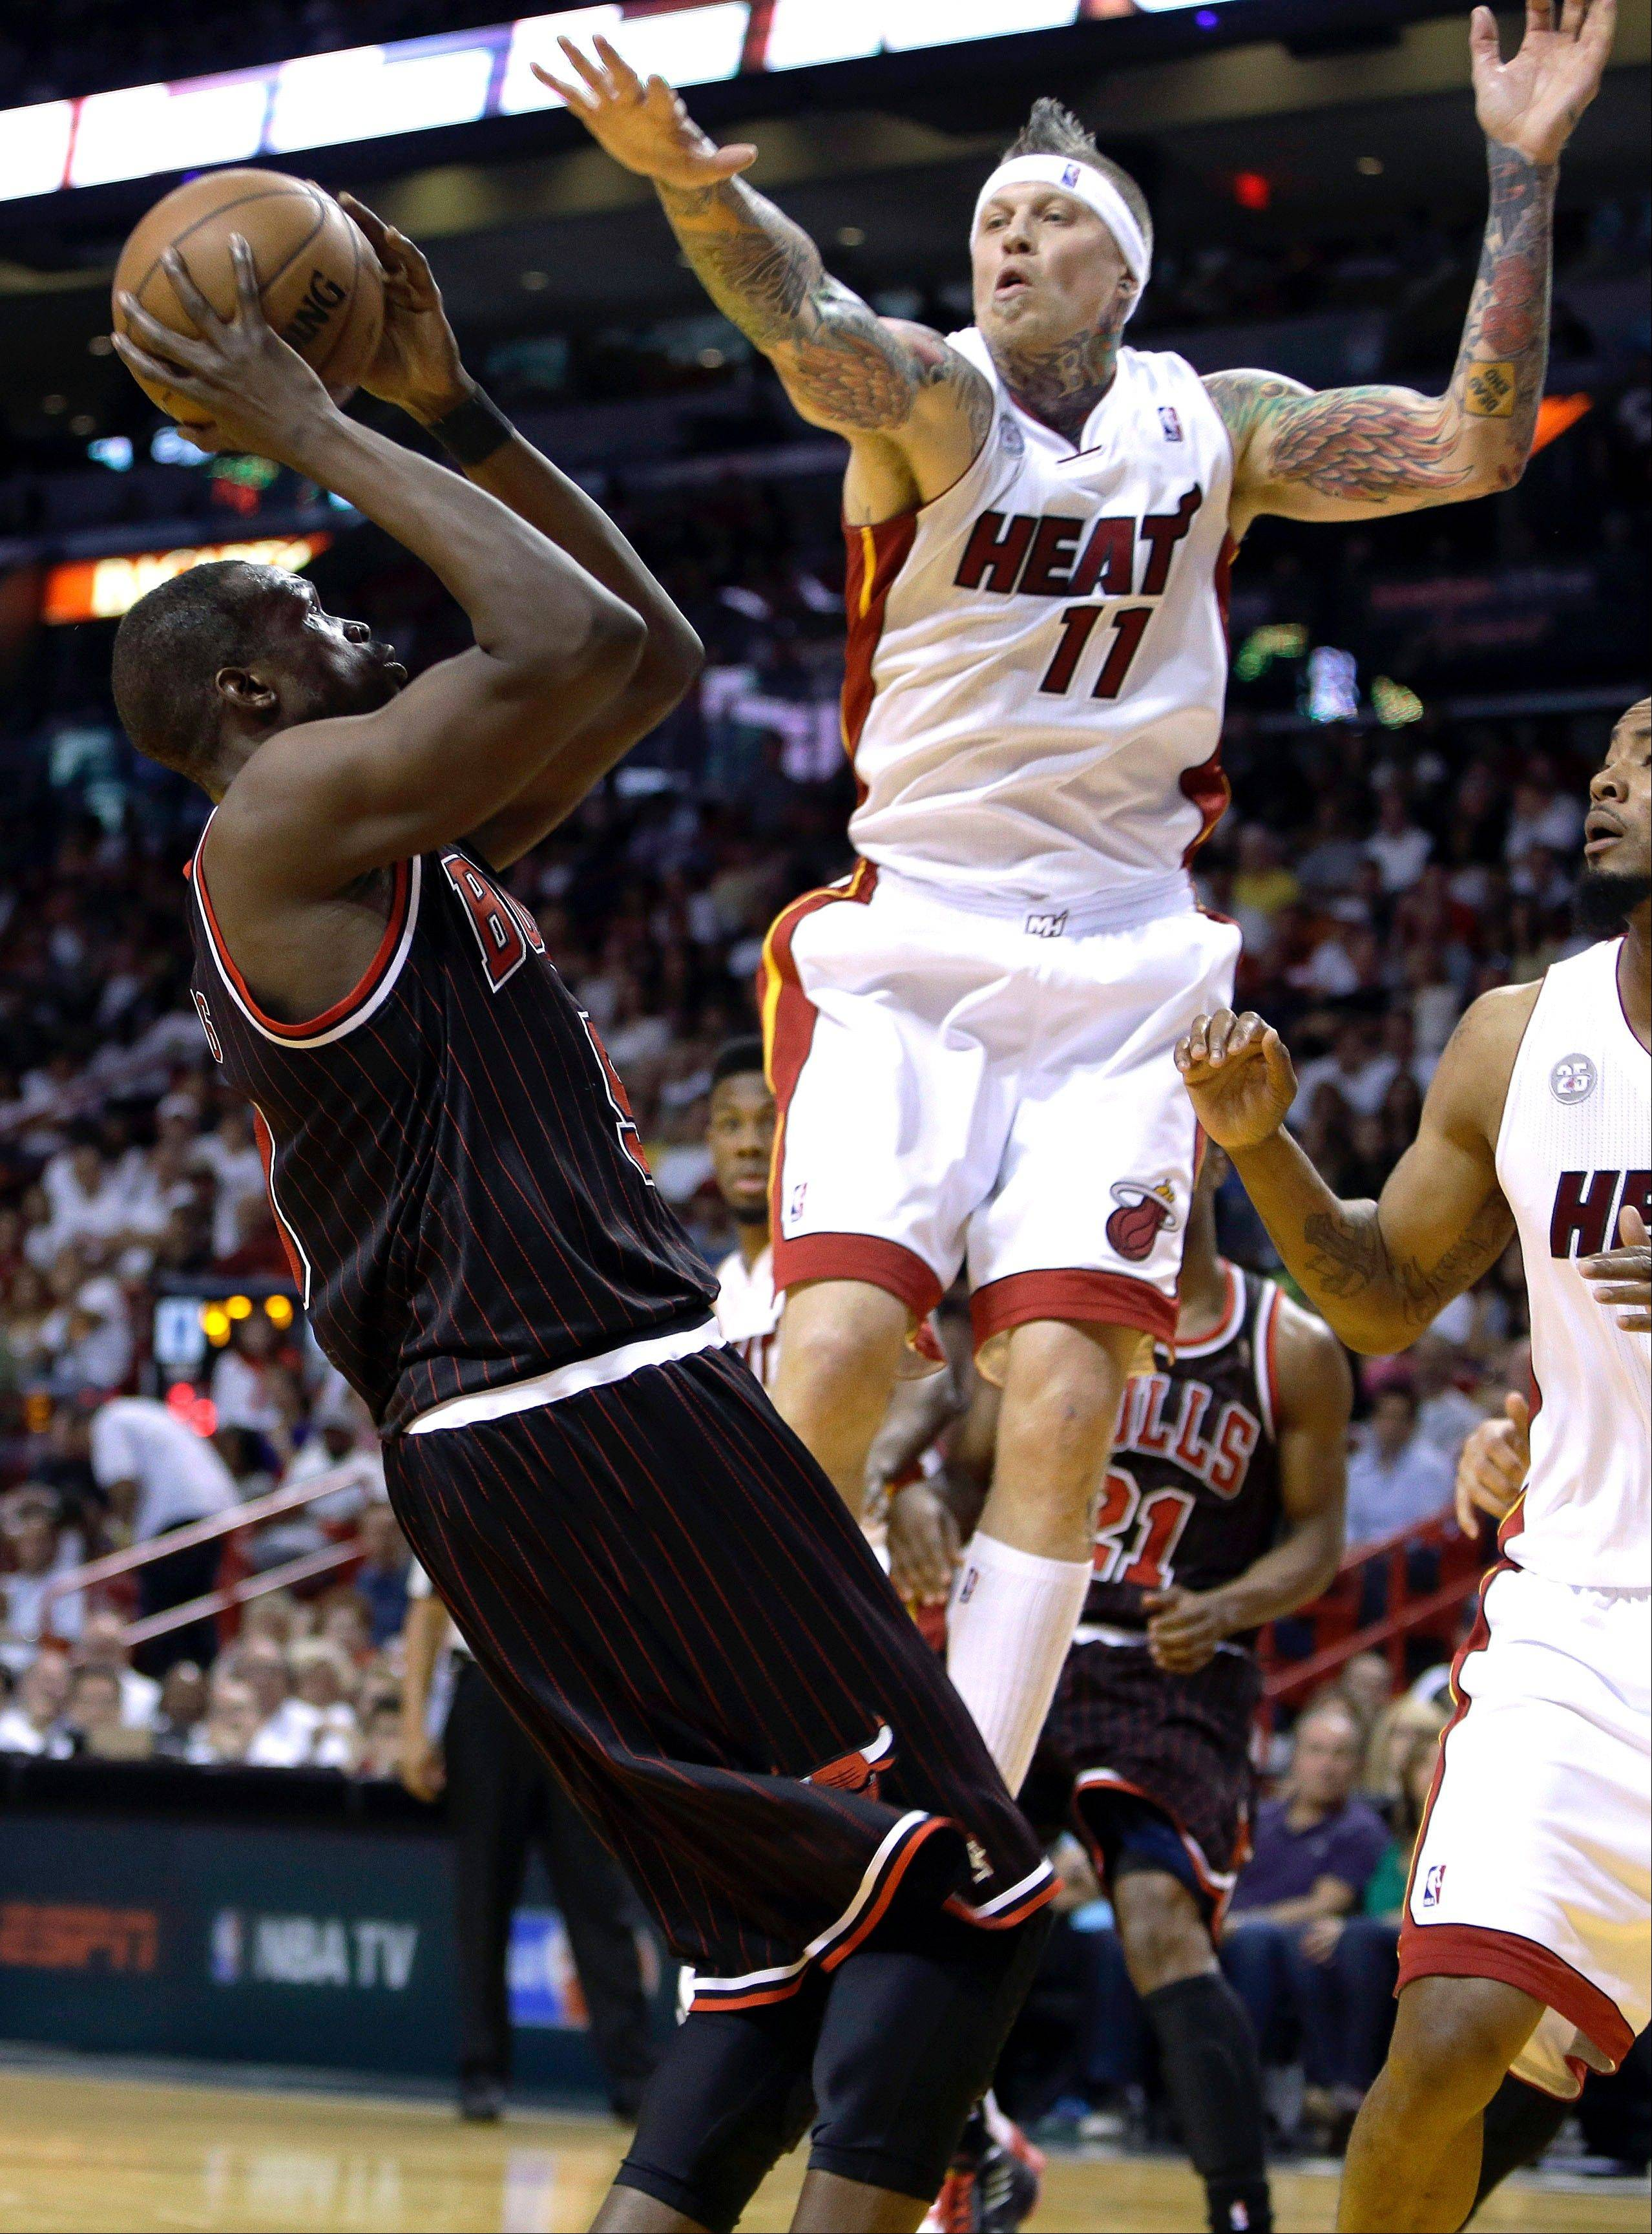 Chicago Bulls' Luol Deng, left, shoots as Miami Heat's Chris Andersen (11) defends during the second half of an NBA basketball game Sunday April 14, 2013, in Miami. The Heat defeated the Bulls 105-93.